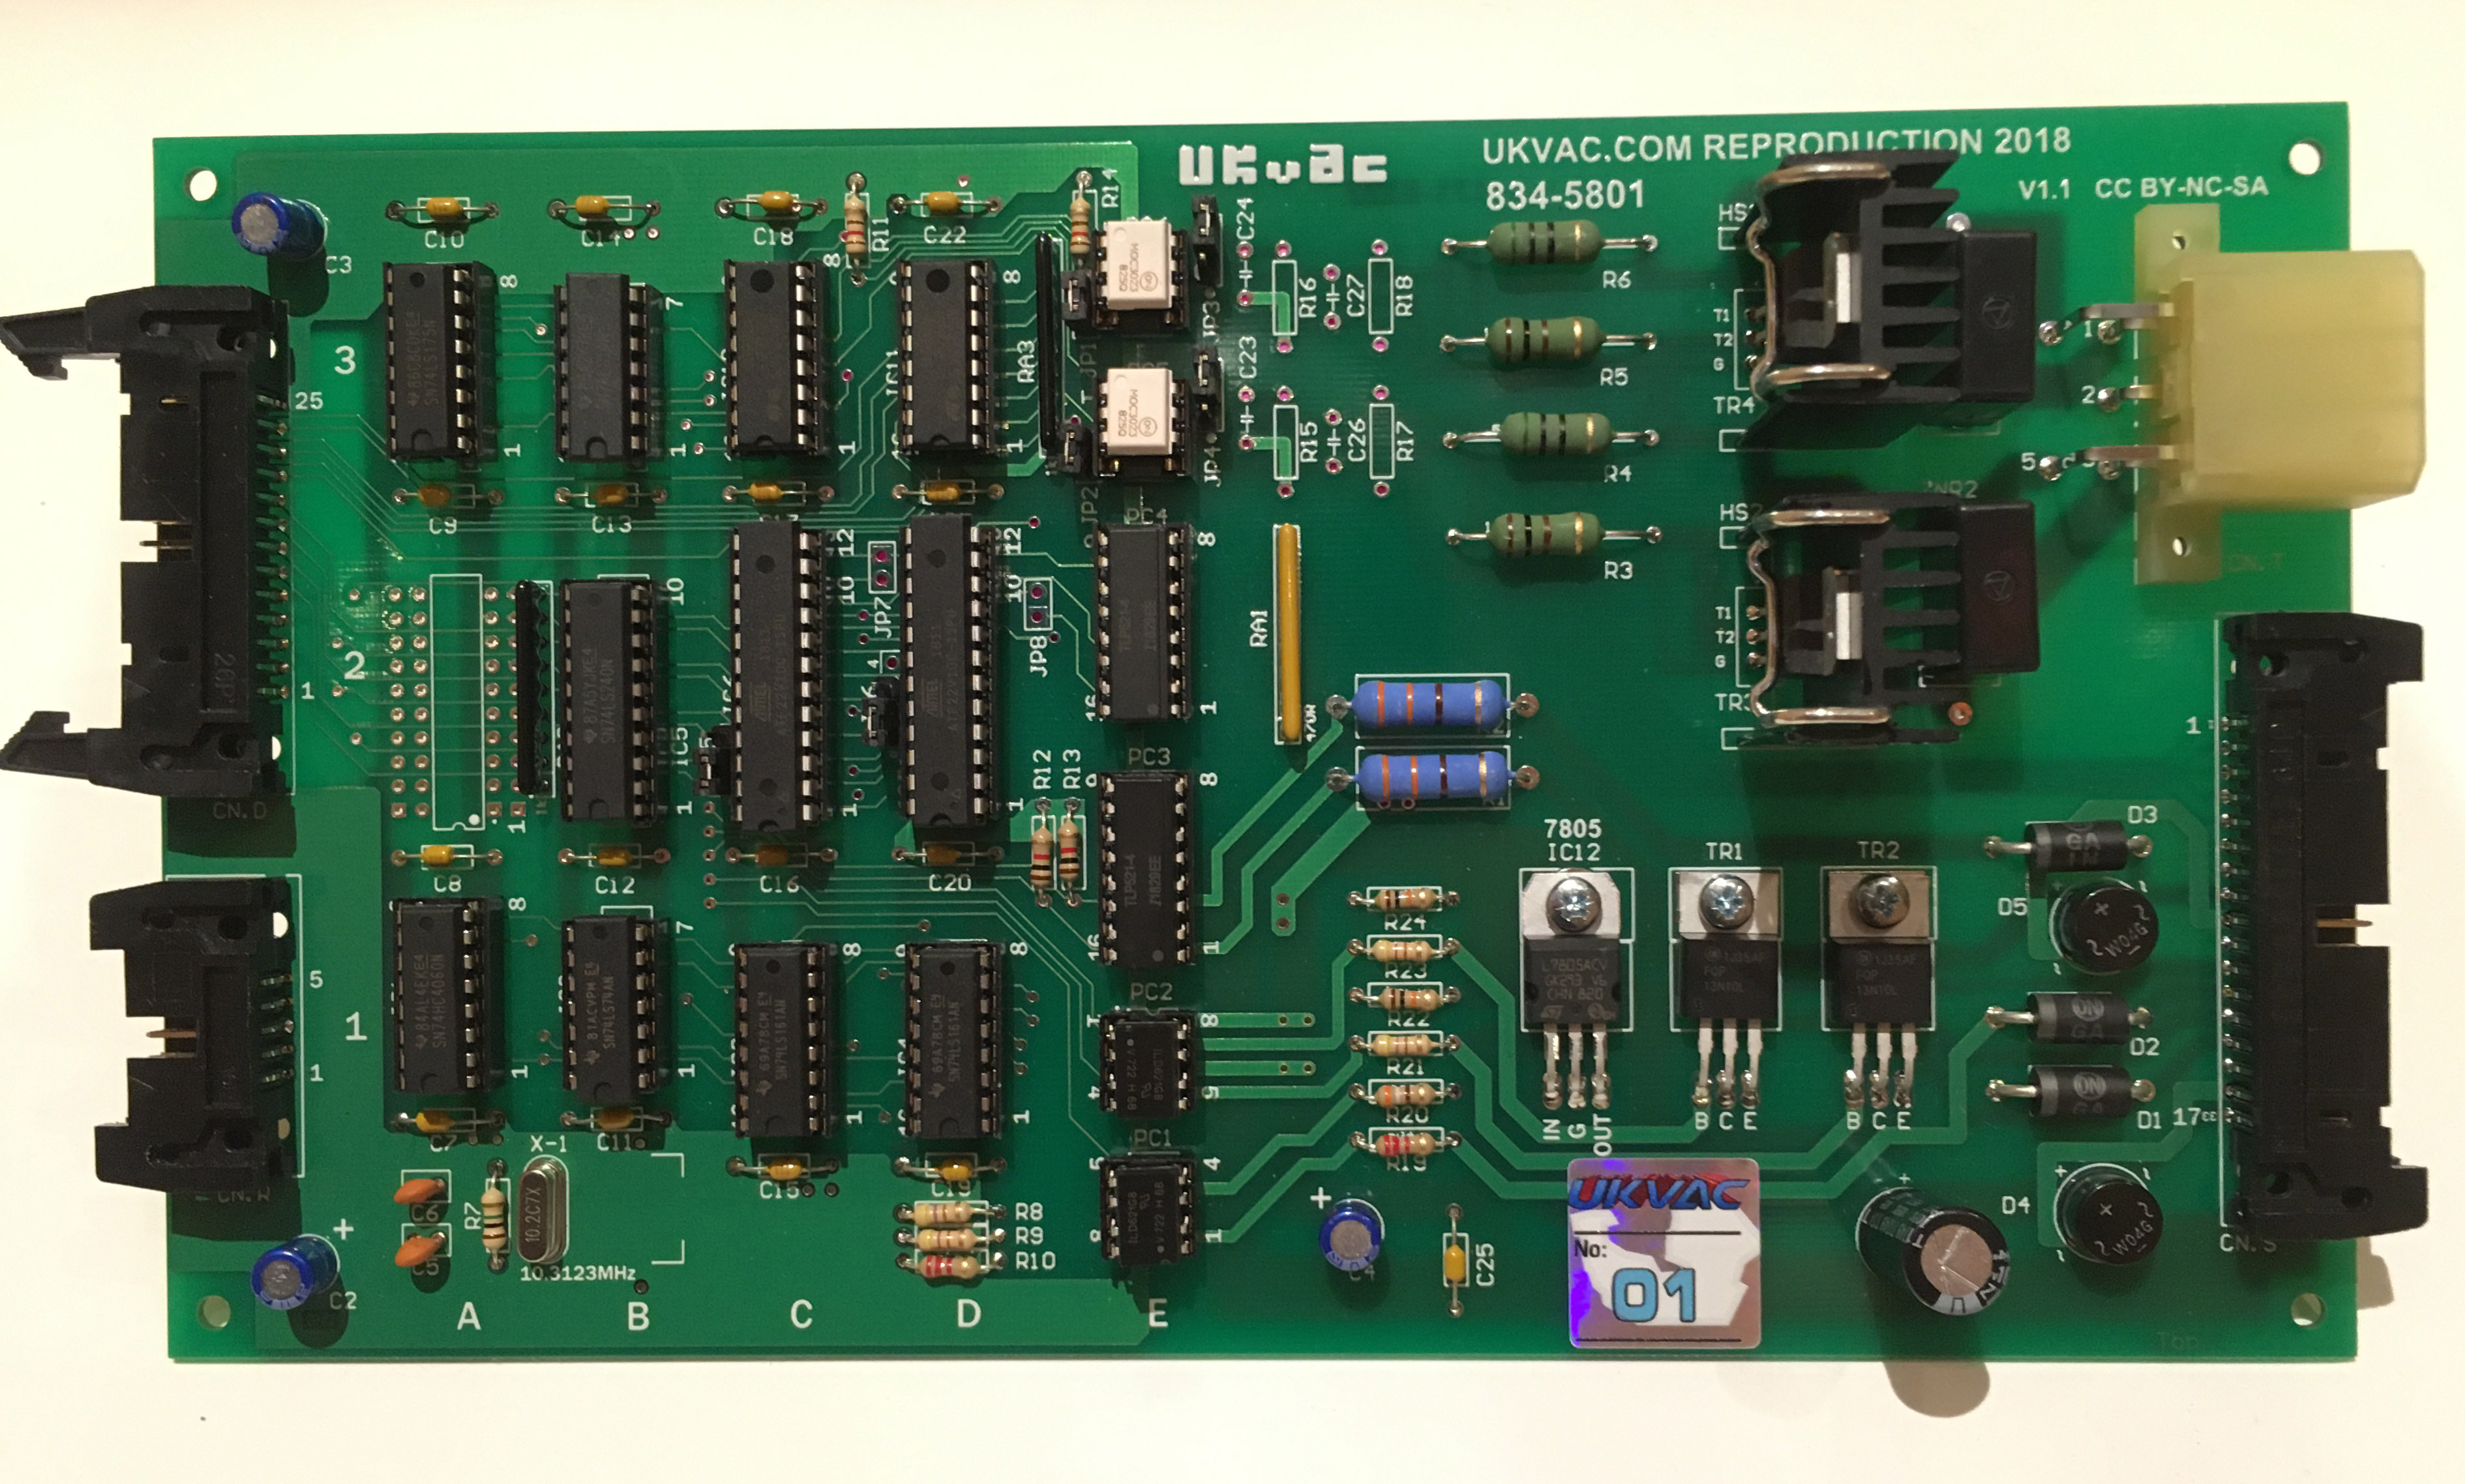 Outrun/Space Harrier DLX Motor PCBs: Pre-orders! - UK-VAC : UK Video